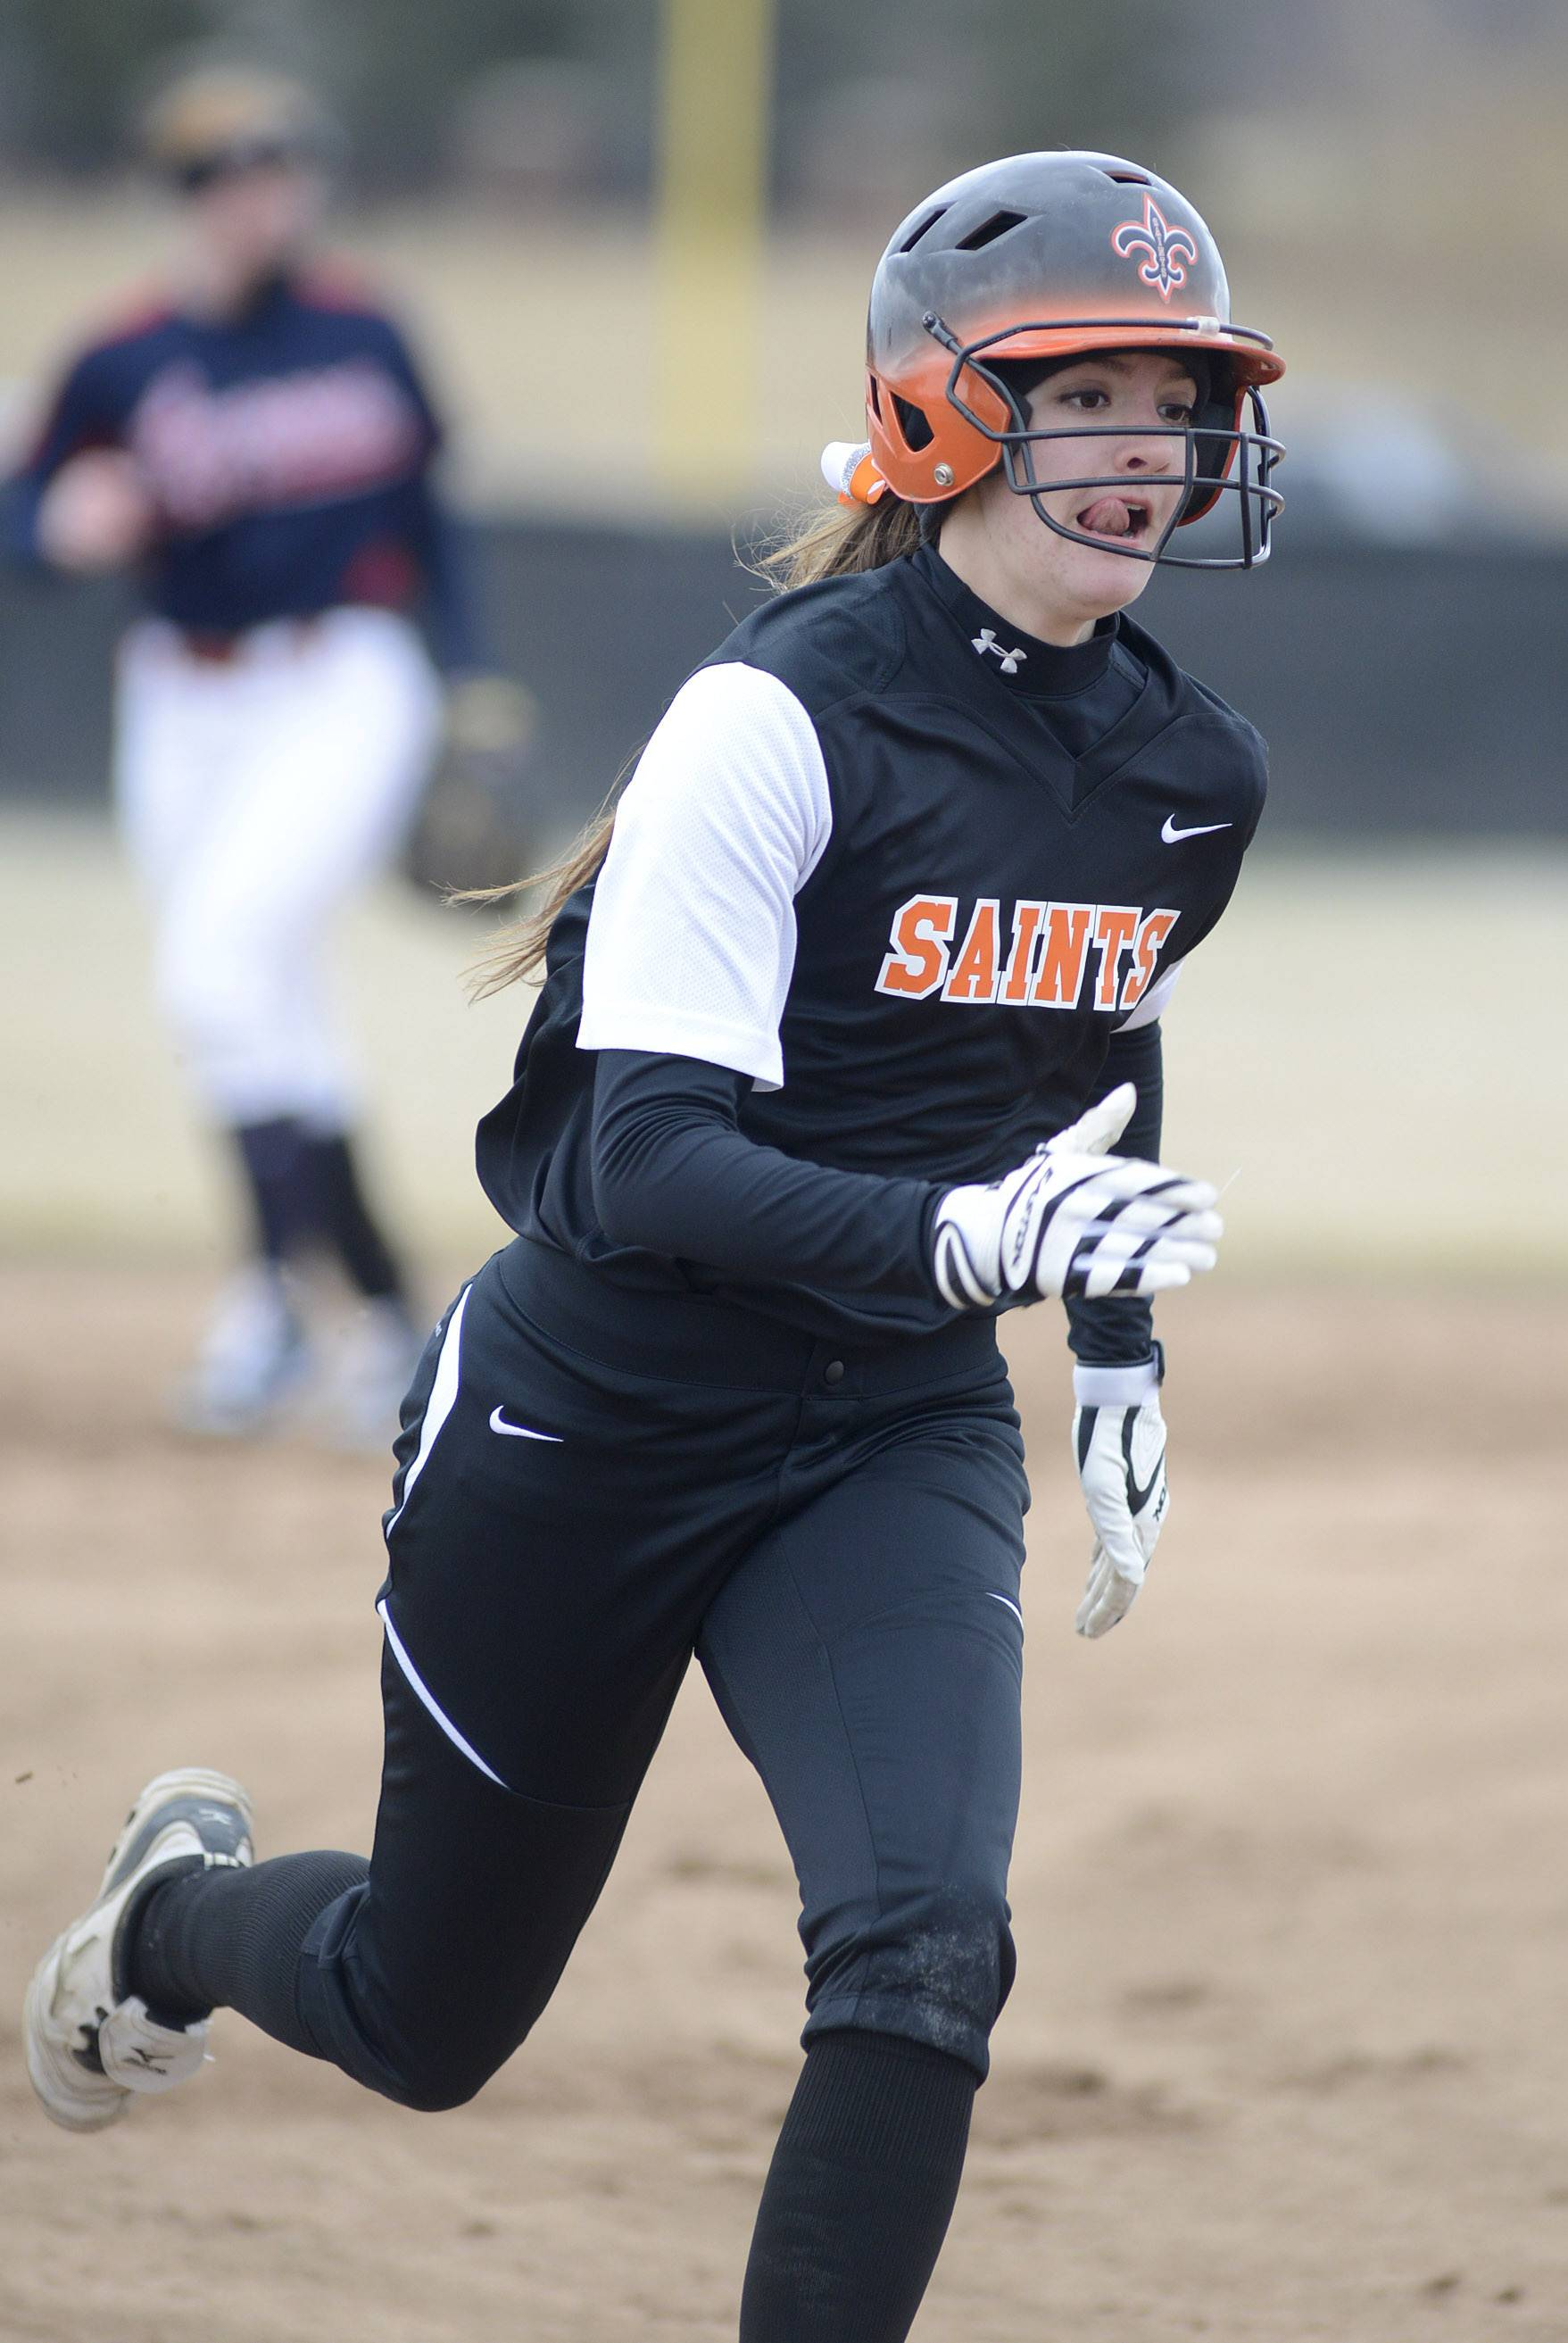 St. Charles East's Tess Hupe heads to third base in the first inning on Friday, April 4.